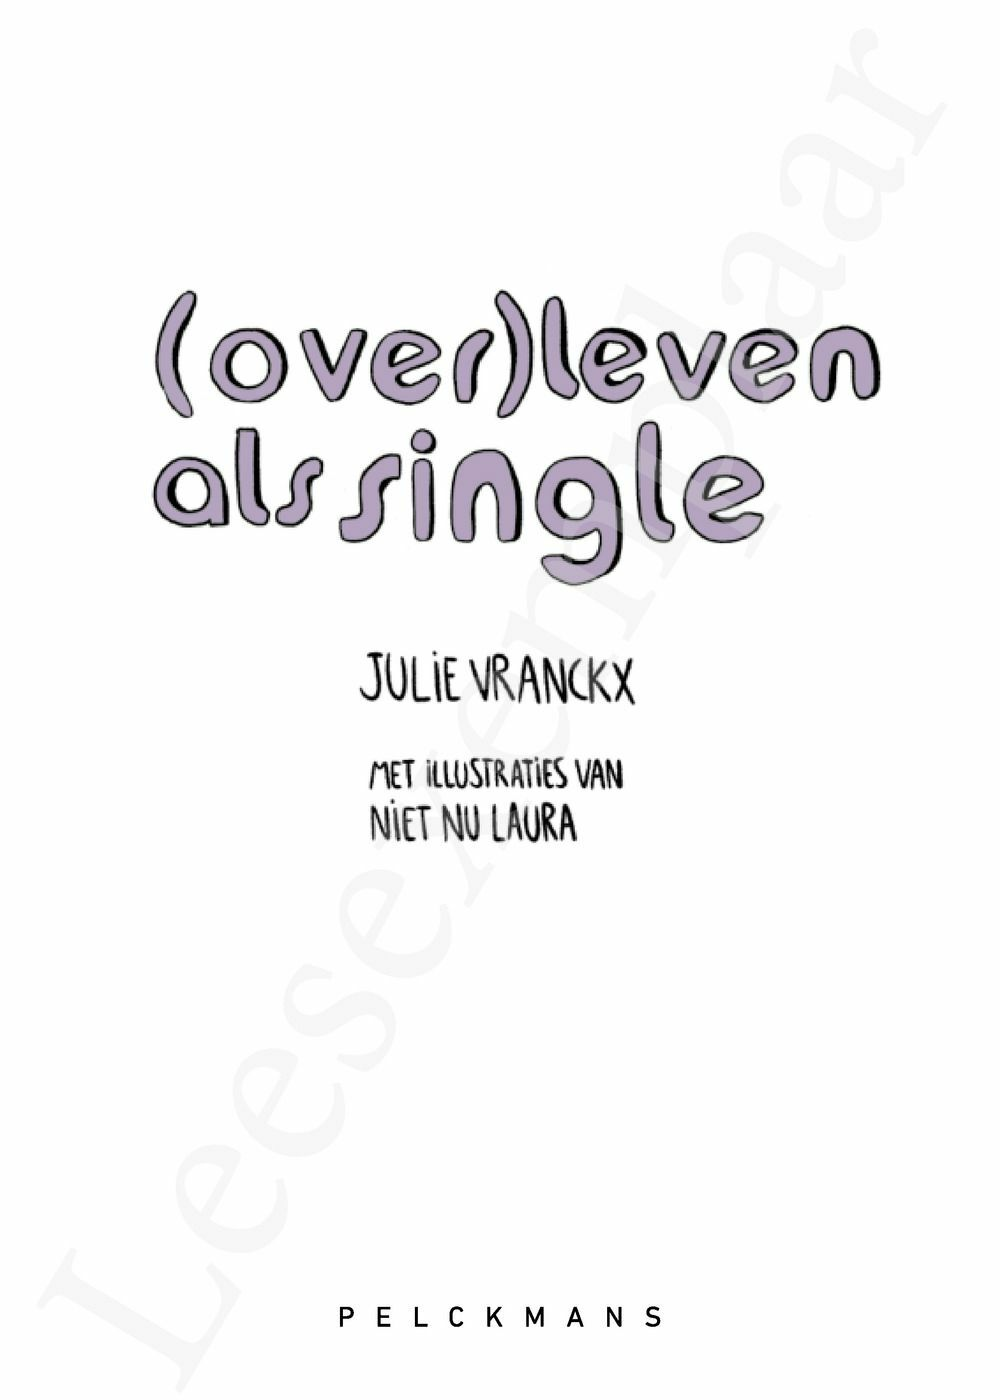 Preview: Overleven als single